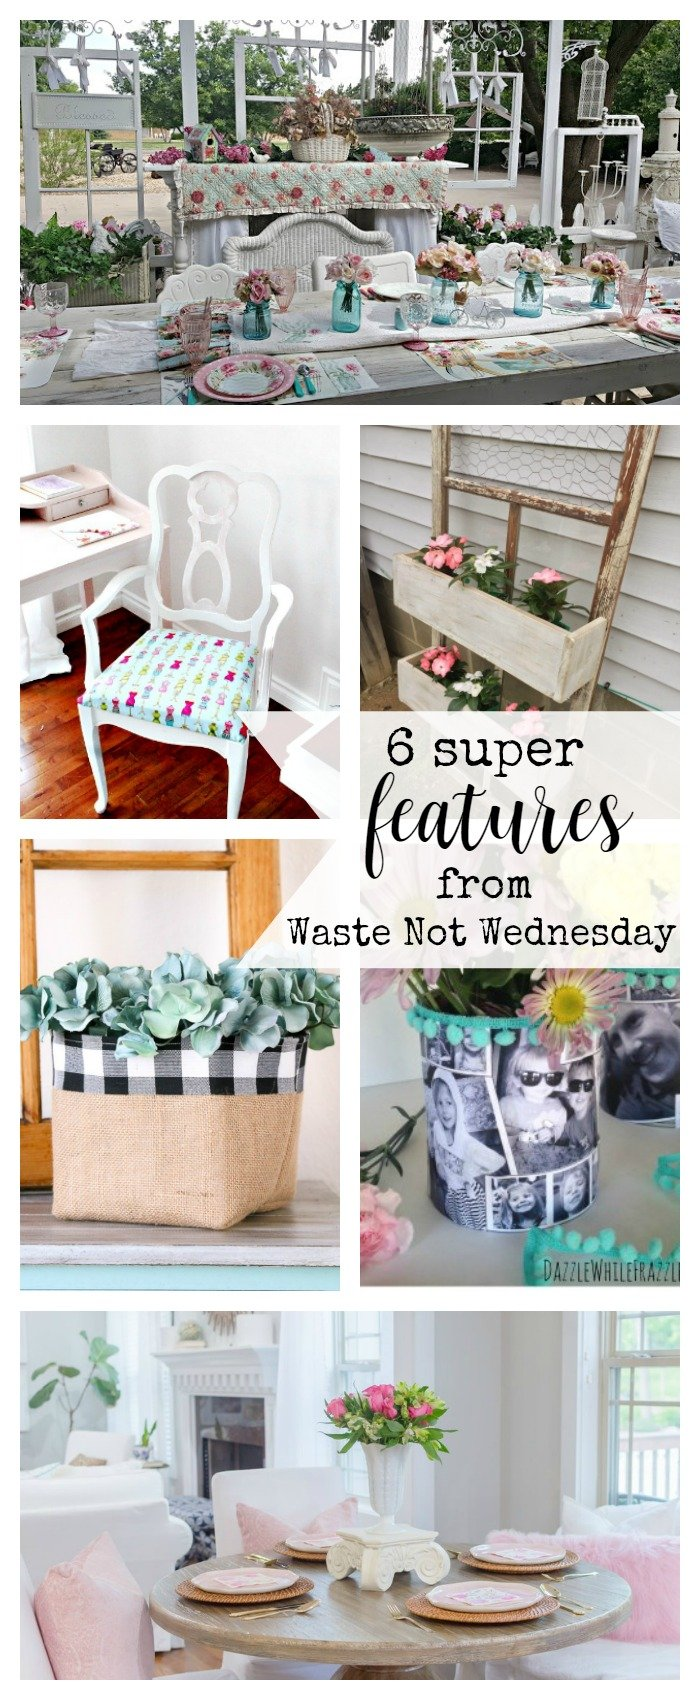 Features from our fun Waste Not Wednesday-50 DIY, Craft, Home Decor and Recipe party this week! Be sure to join us and share your DIY, Craft, Home Decor and favourite recipes! | www.raggedy-bits.com | www.mythriftyhouse.com | www.gratefullyvintage.com | www.salvagesisterandmister.com | www.reinventedkb.com